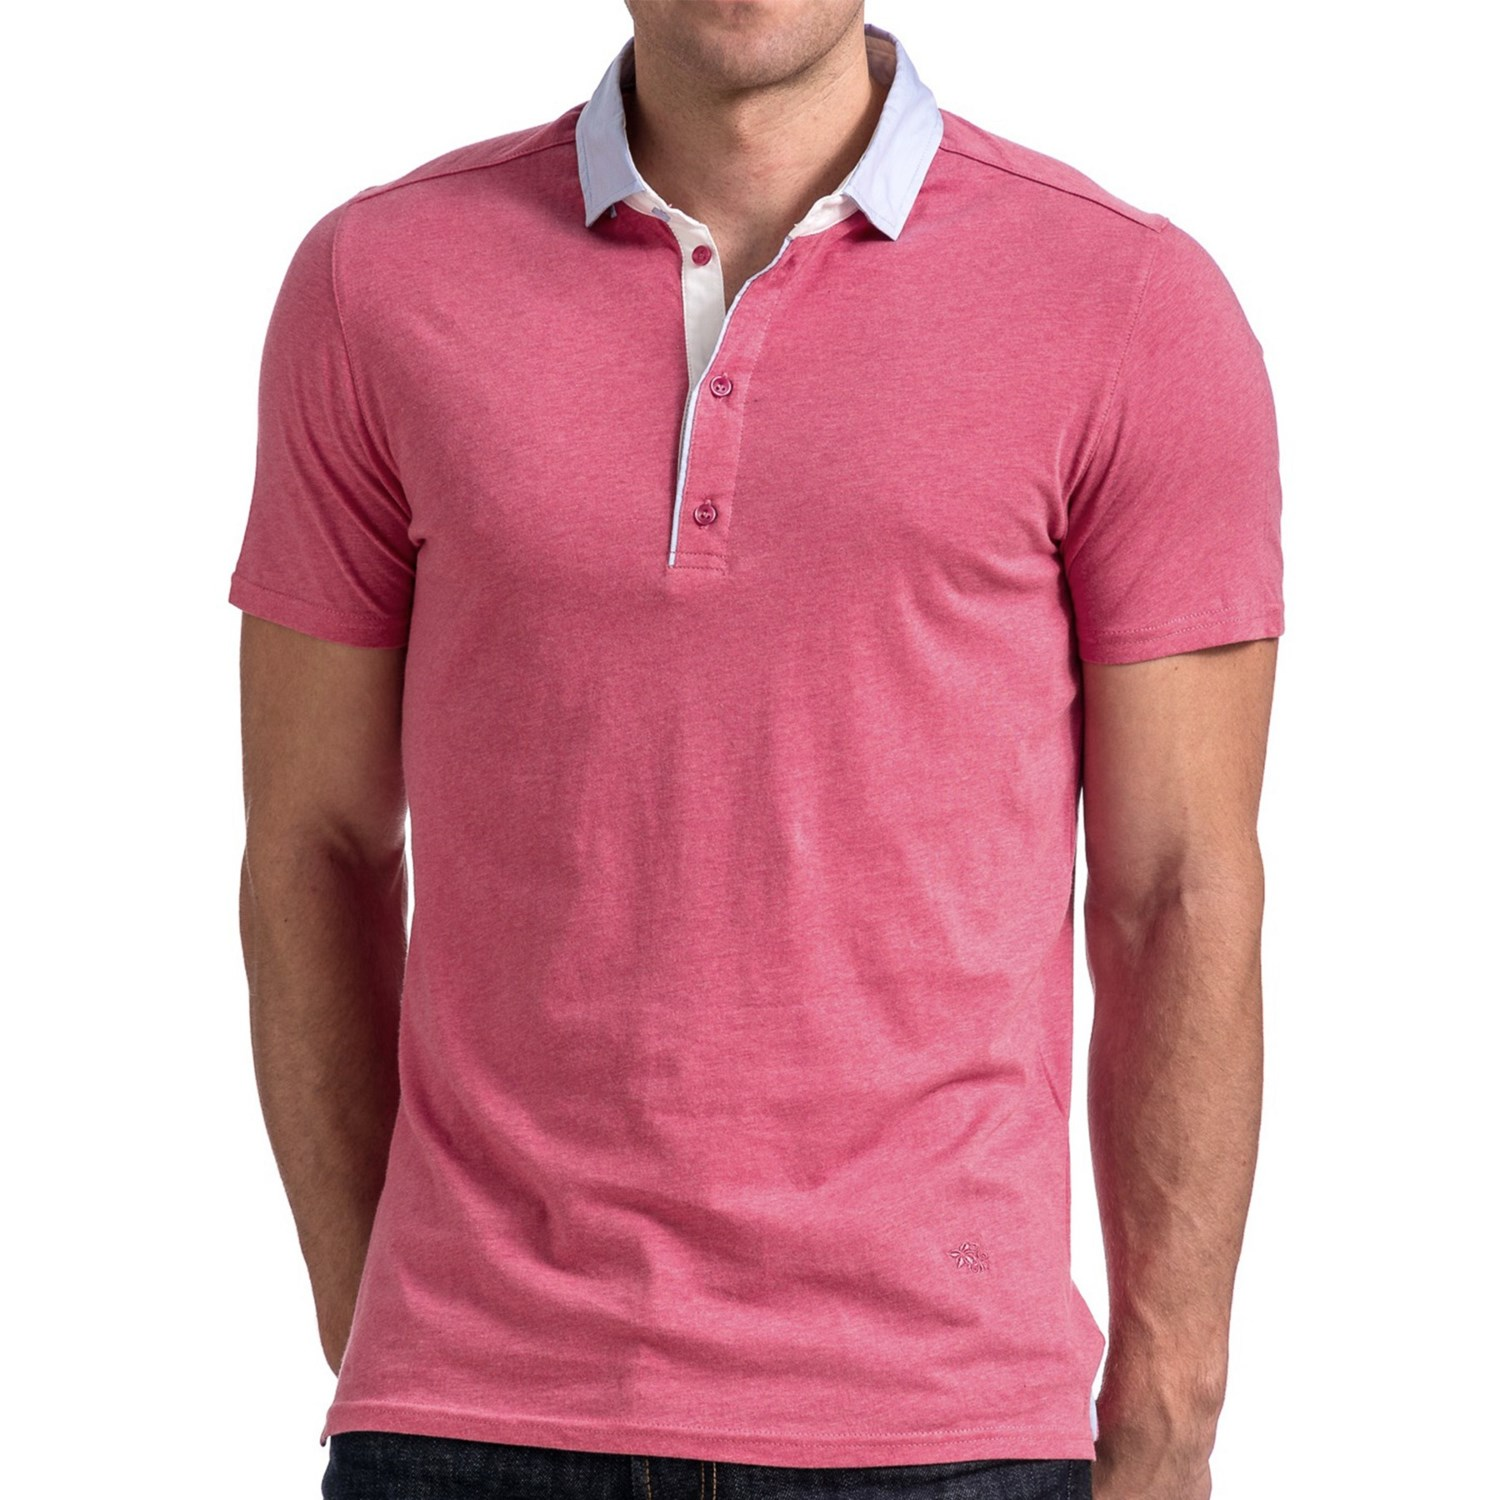 Stone rose jersey knit polo shirt for men save 72 Man in polo shirt